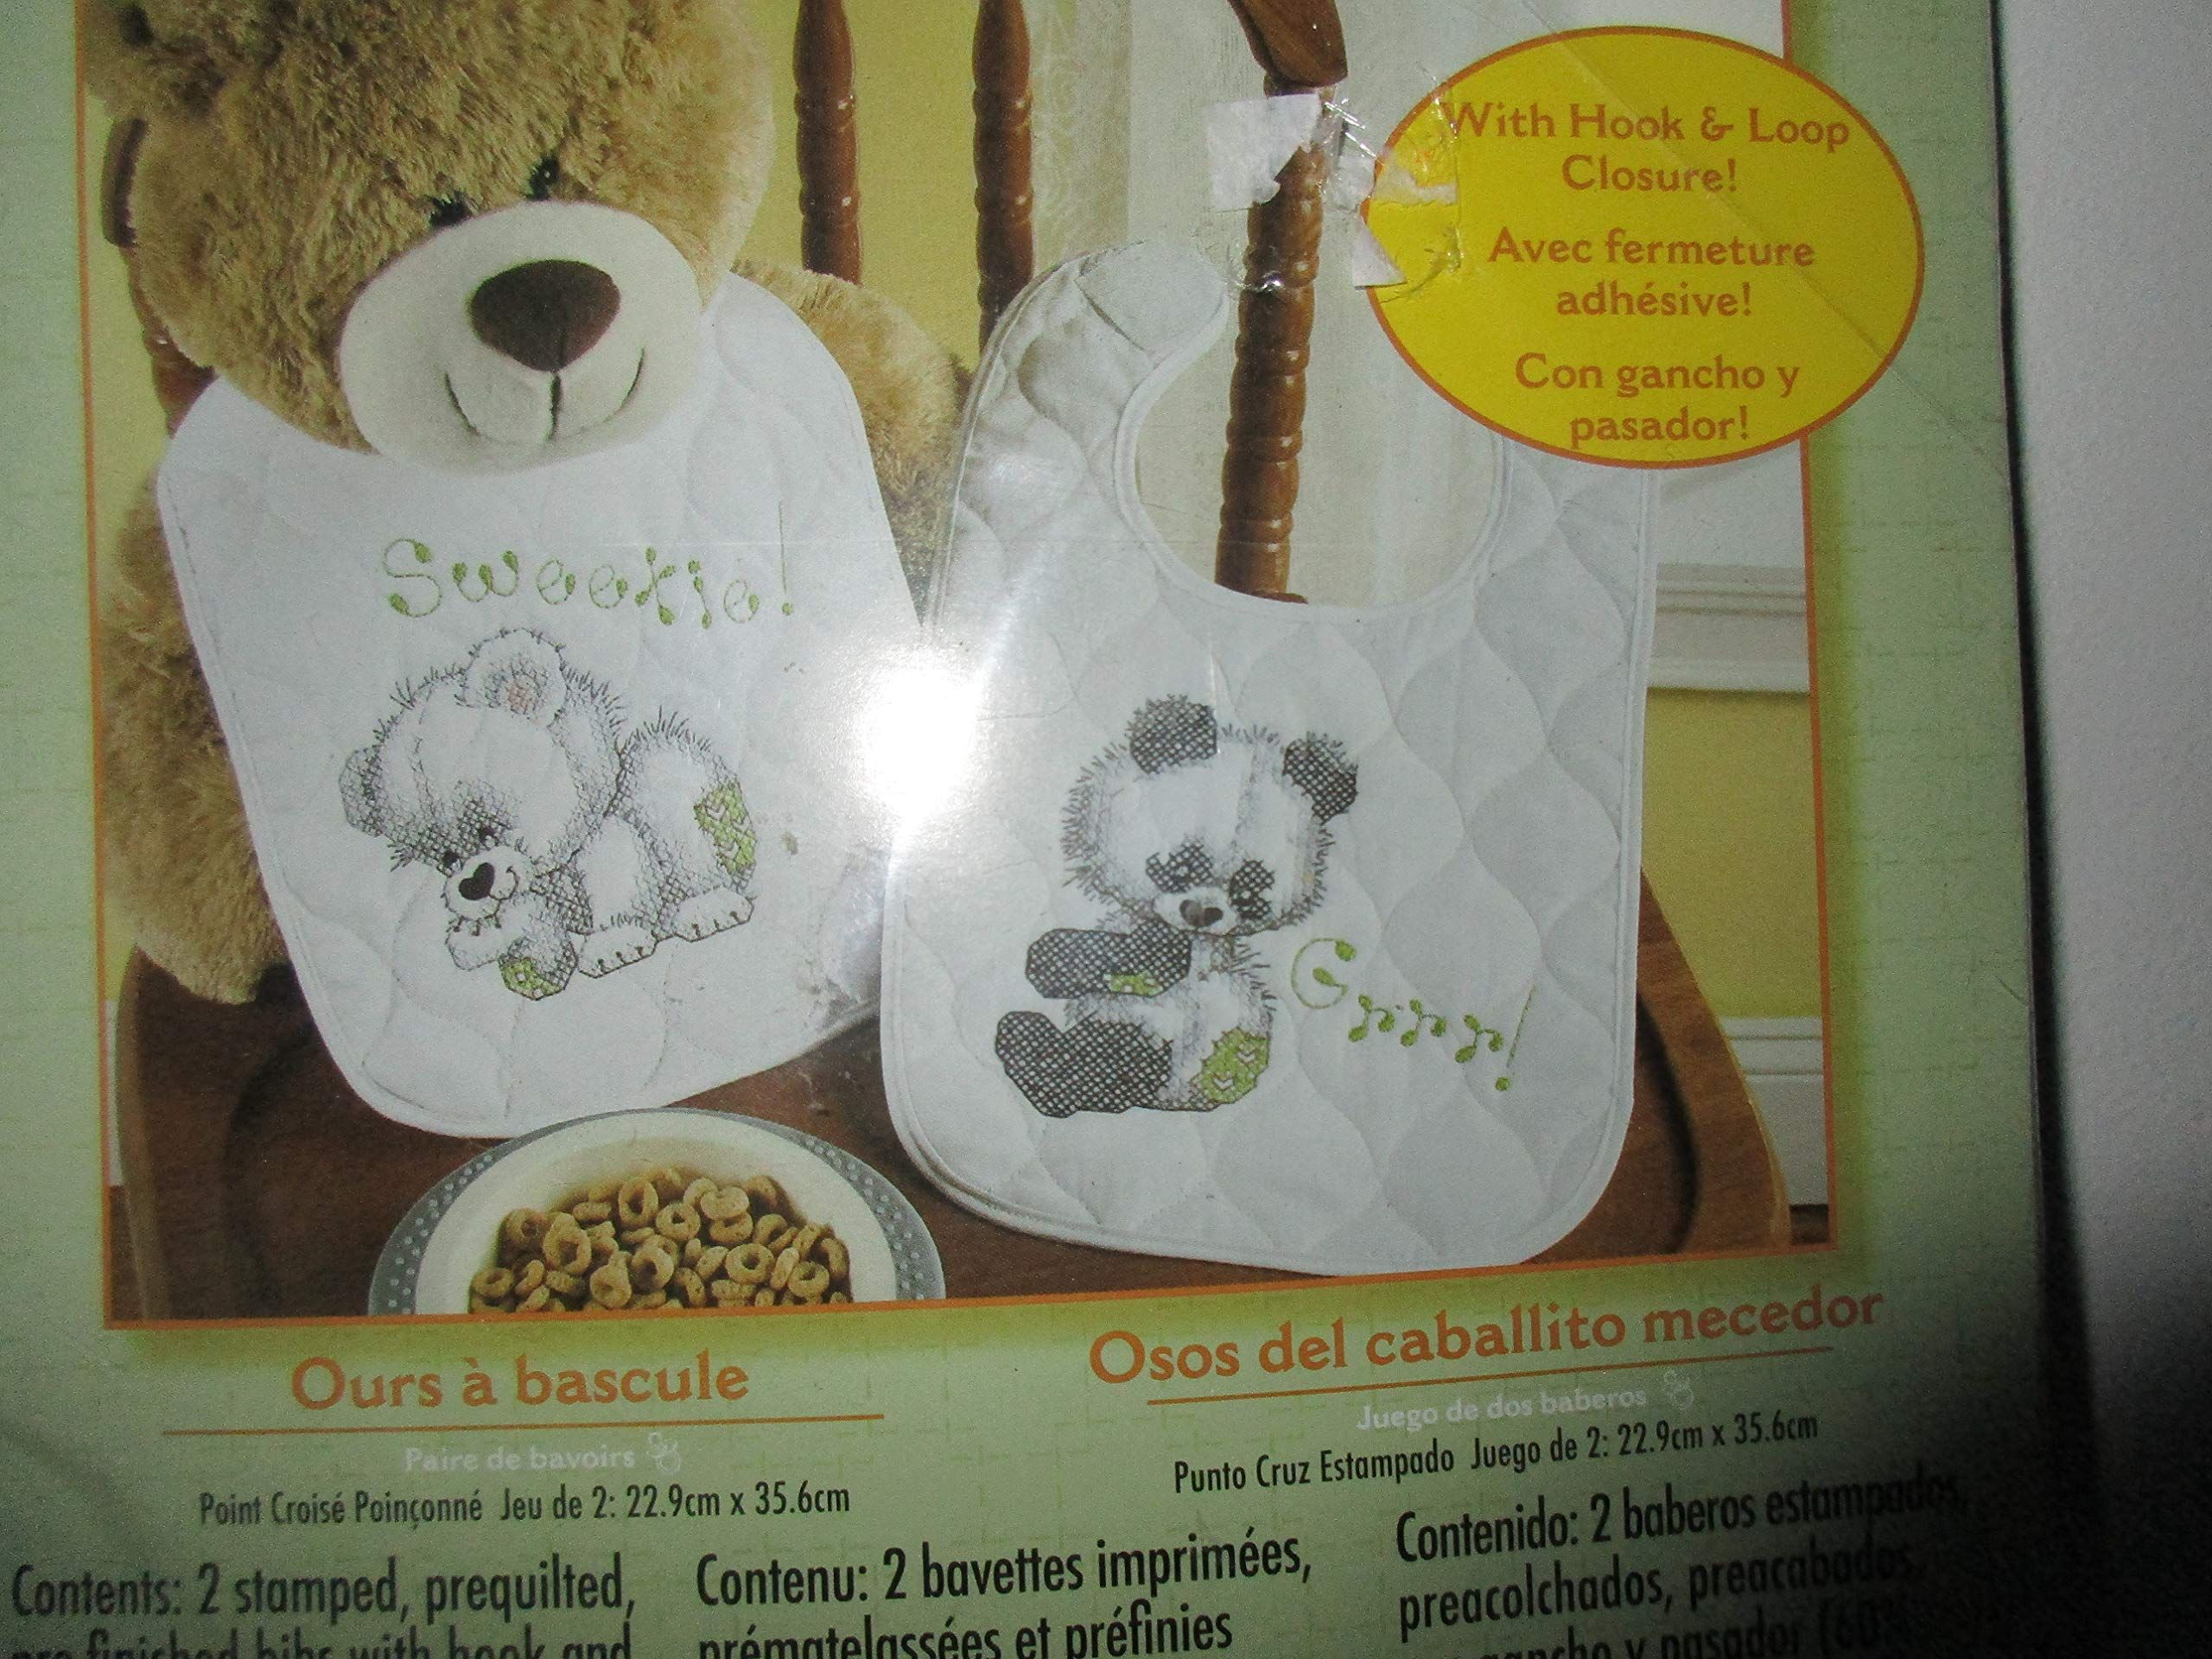 Bucilla Baby Stamped Cross Stitch Quilted Bib Kit, 45611 Rocking Horse Bears (Set of 2)